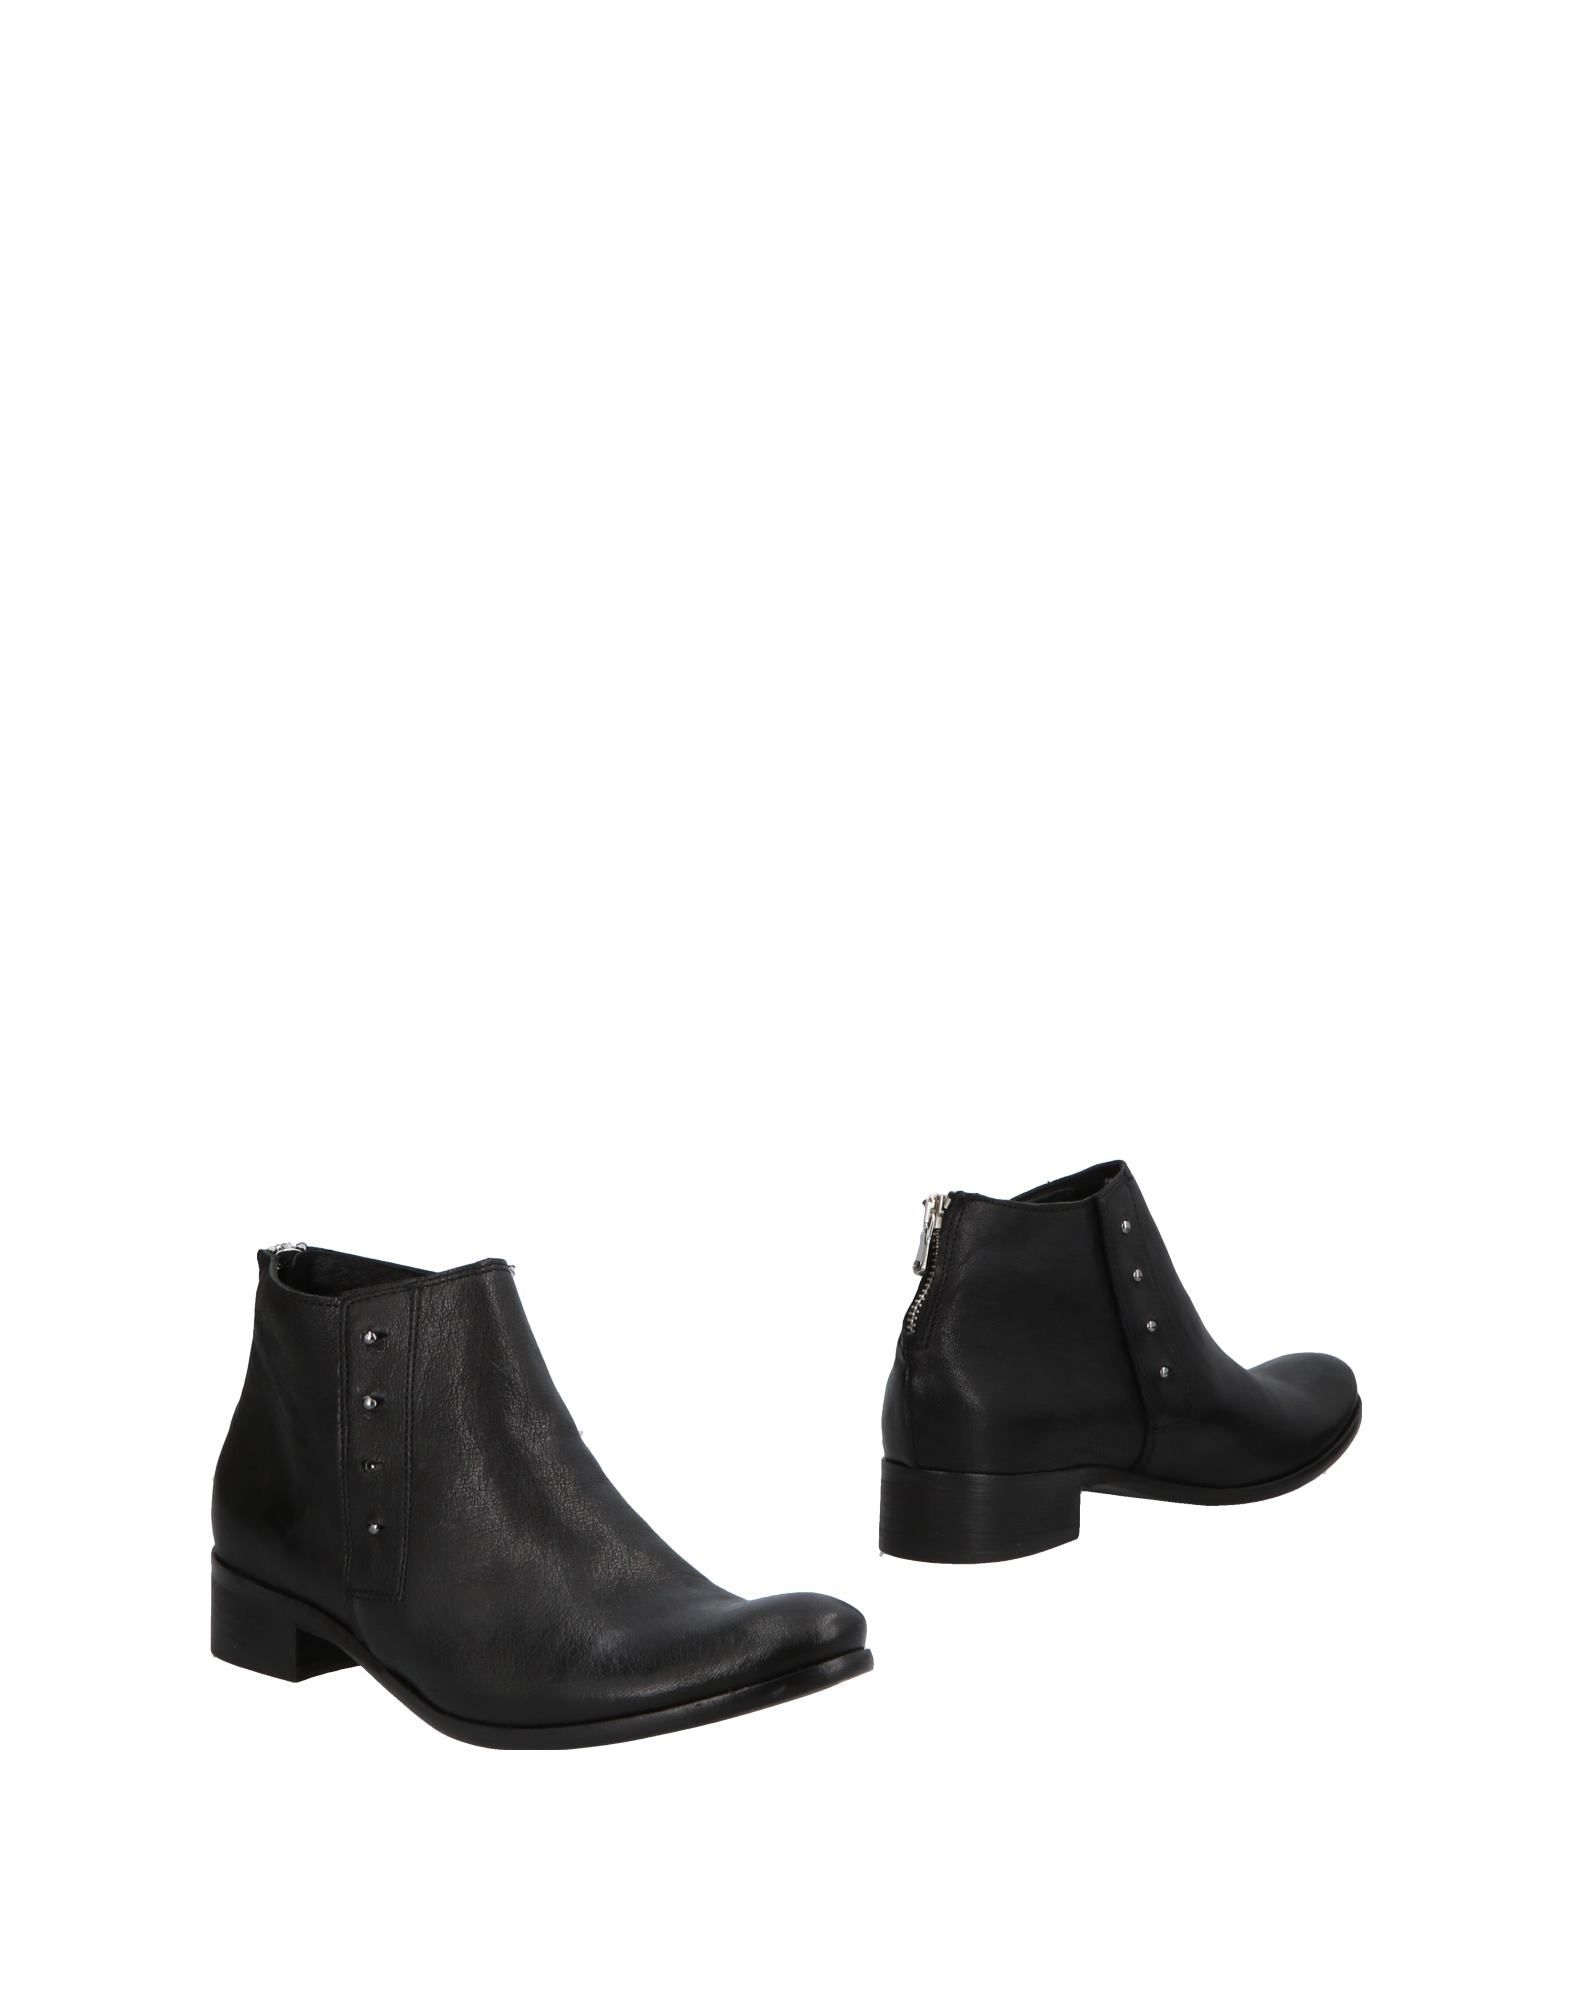 Chiarini Bologna Ankle Boot - Women Chiarini Bologna Ankle Boots - online on  Australia - Boots 11503867IW 098910